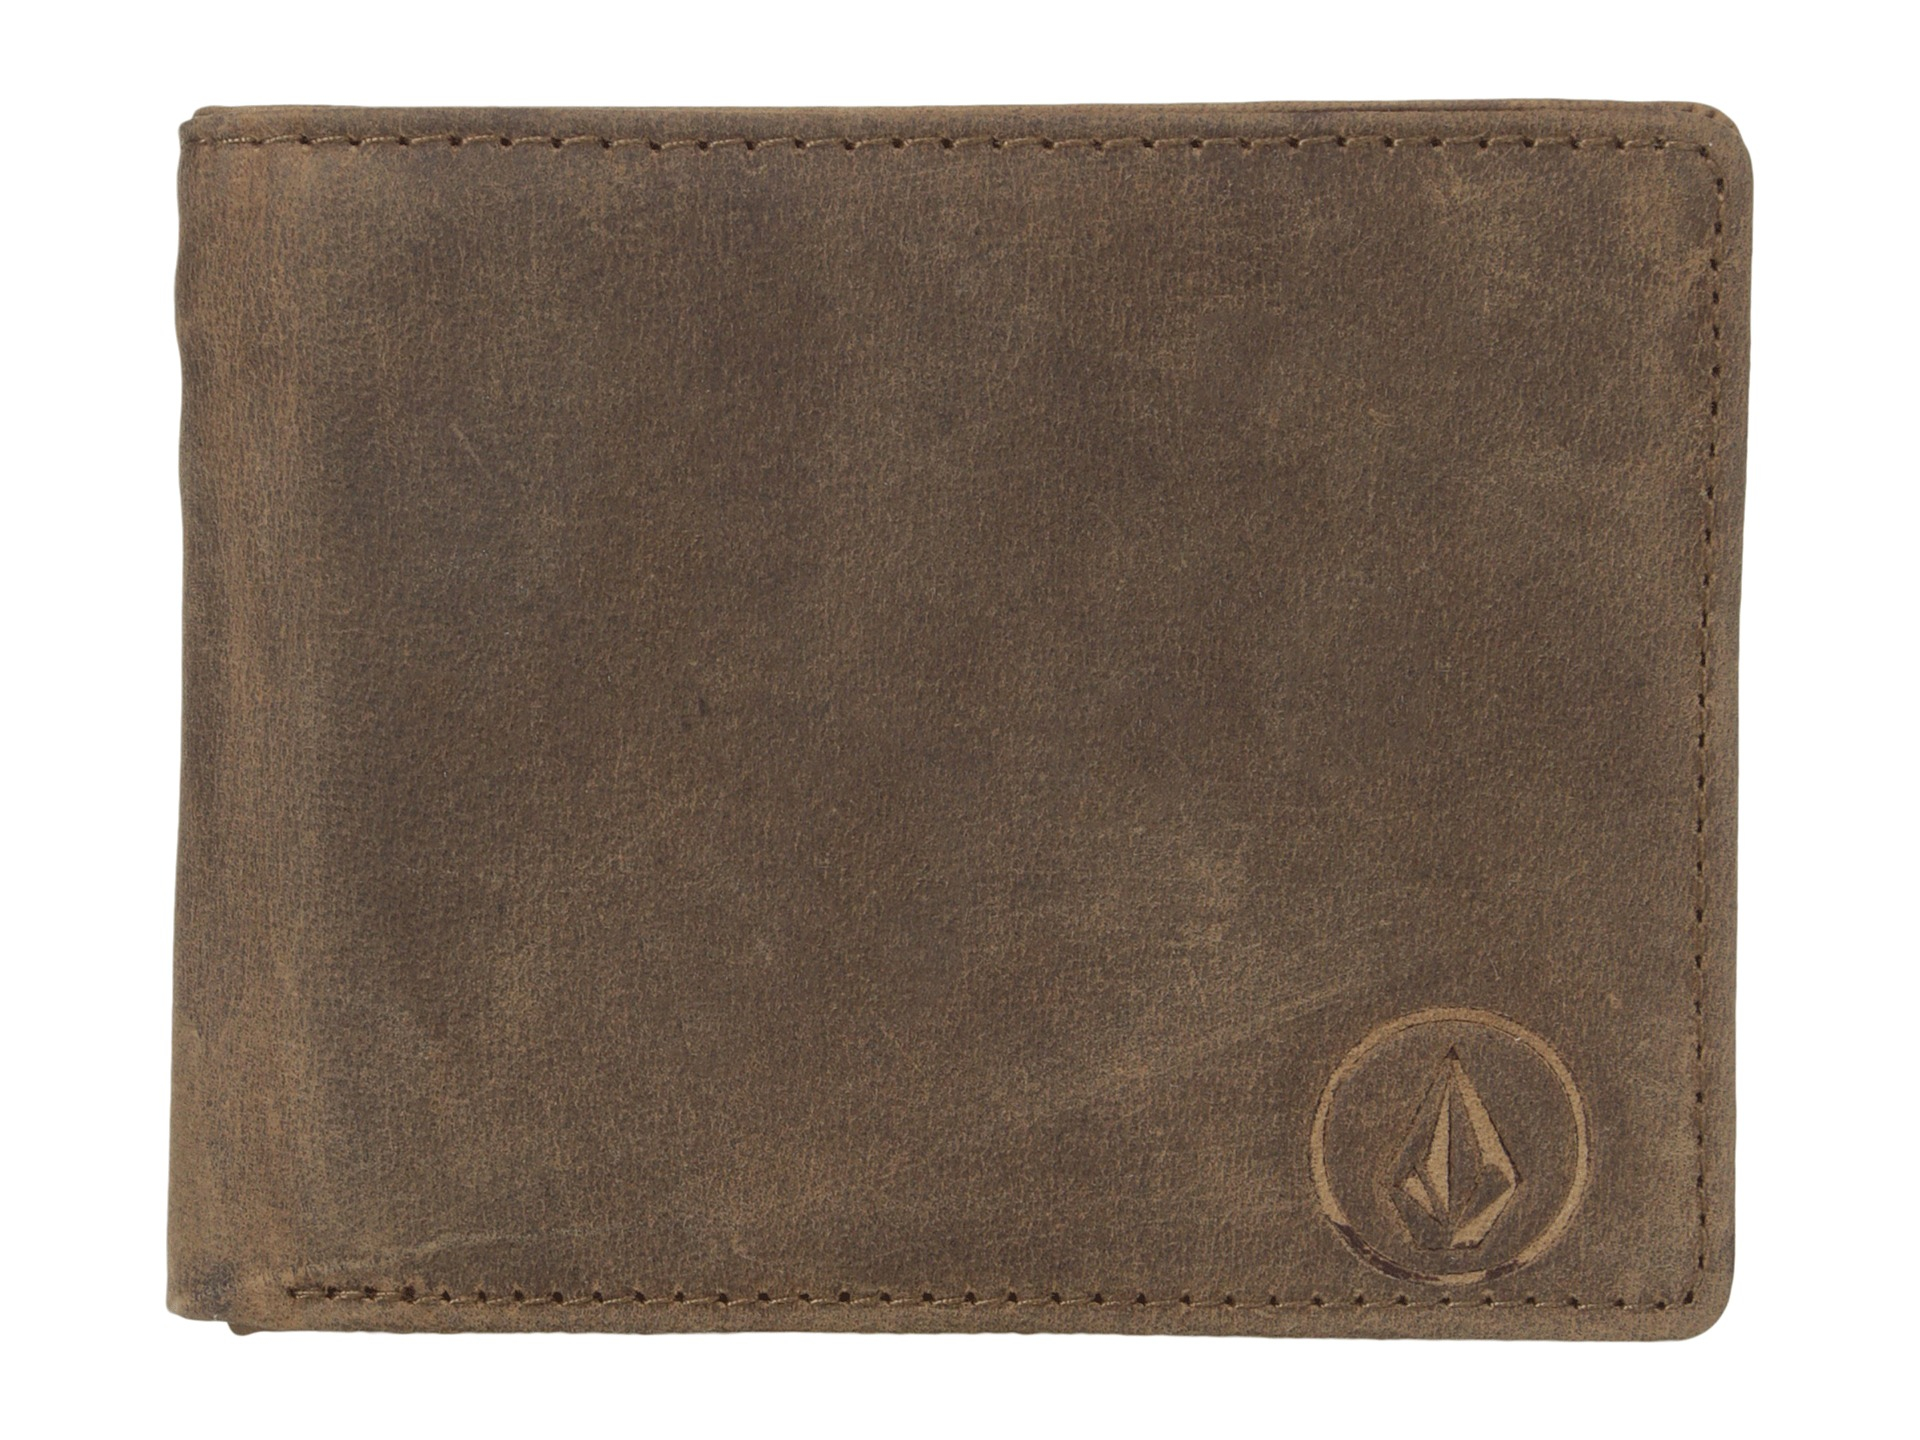 Lyst - Volcom Prime Leather Wallet in Brown for Men